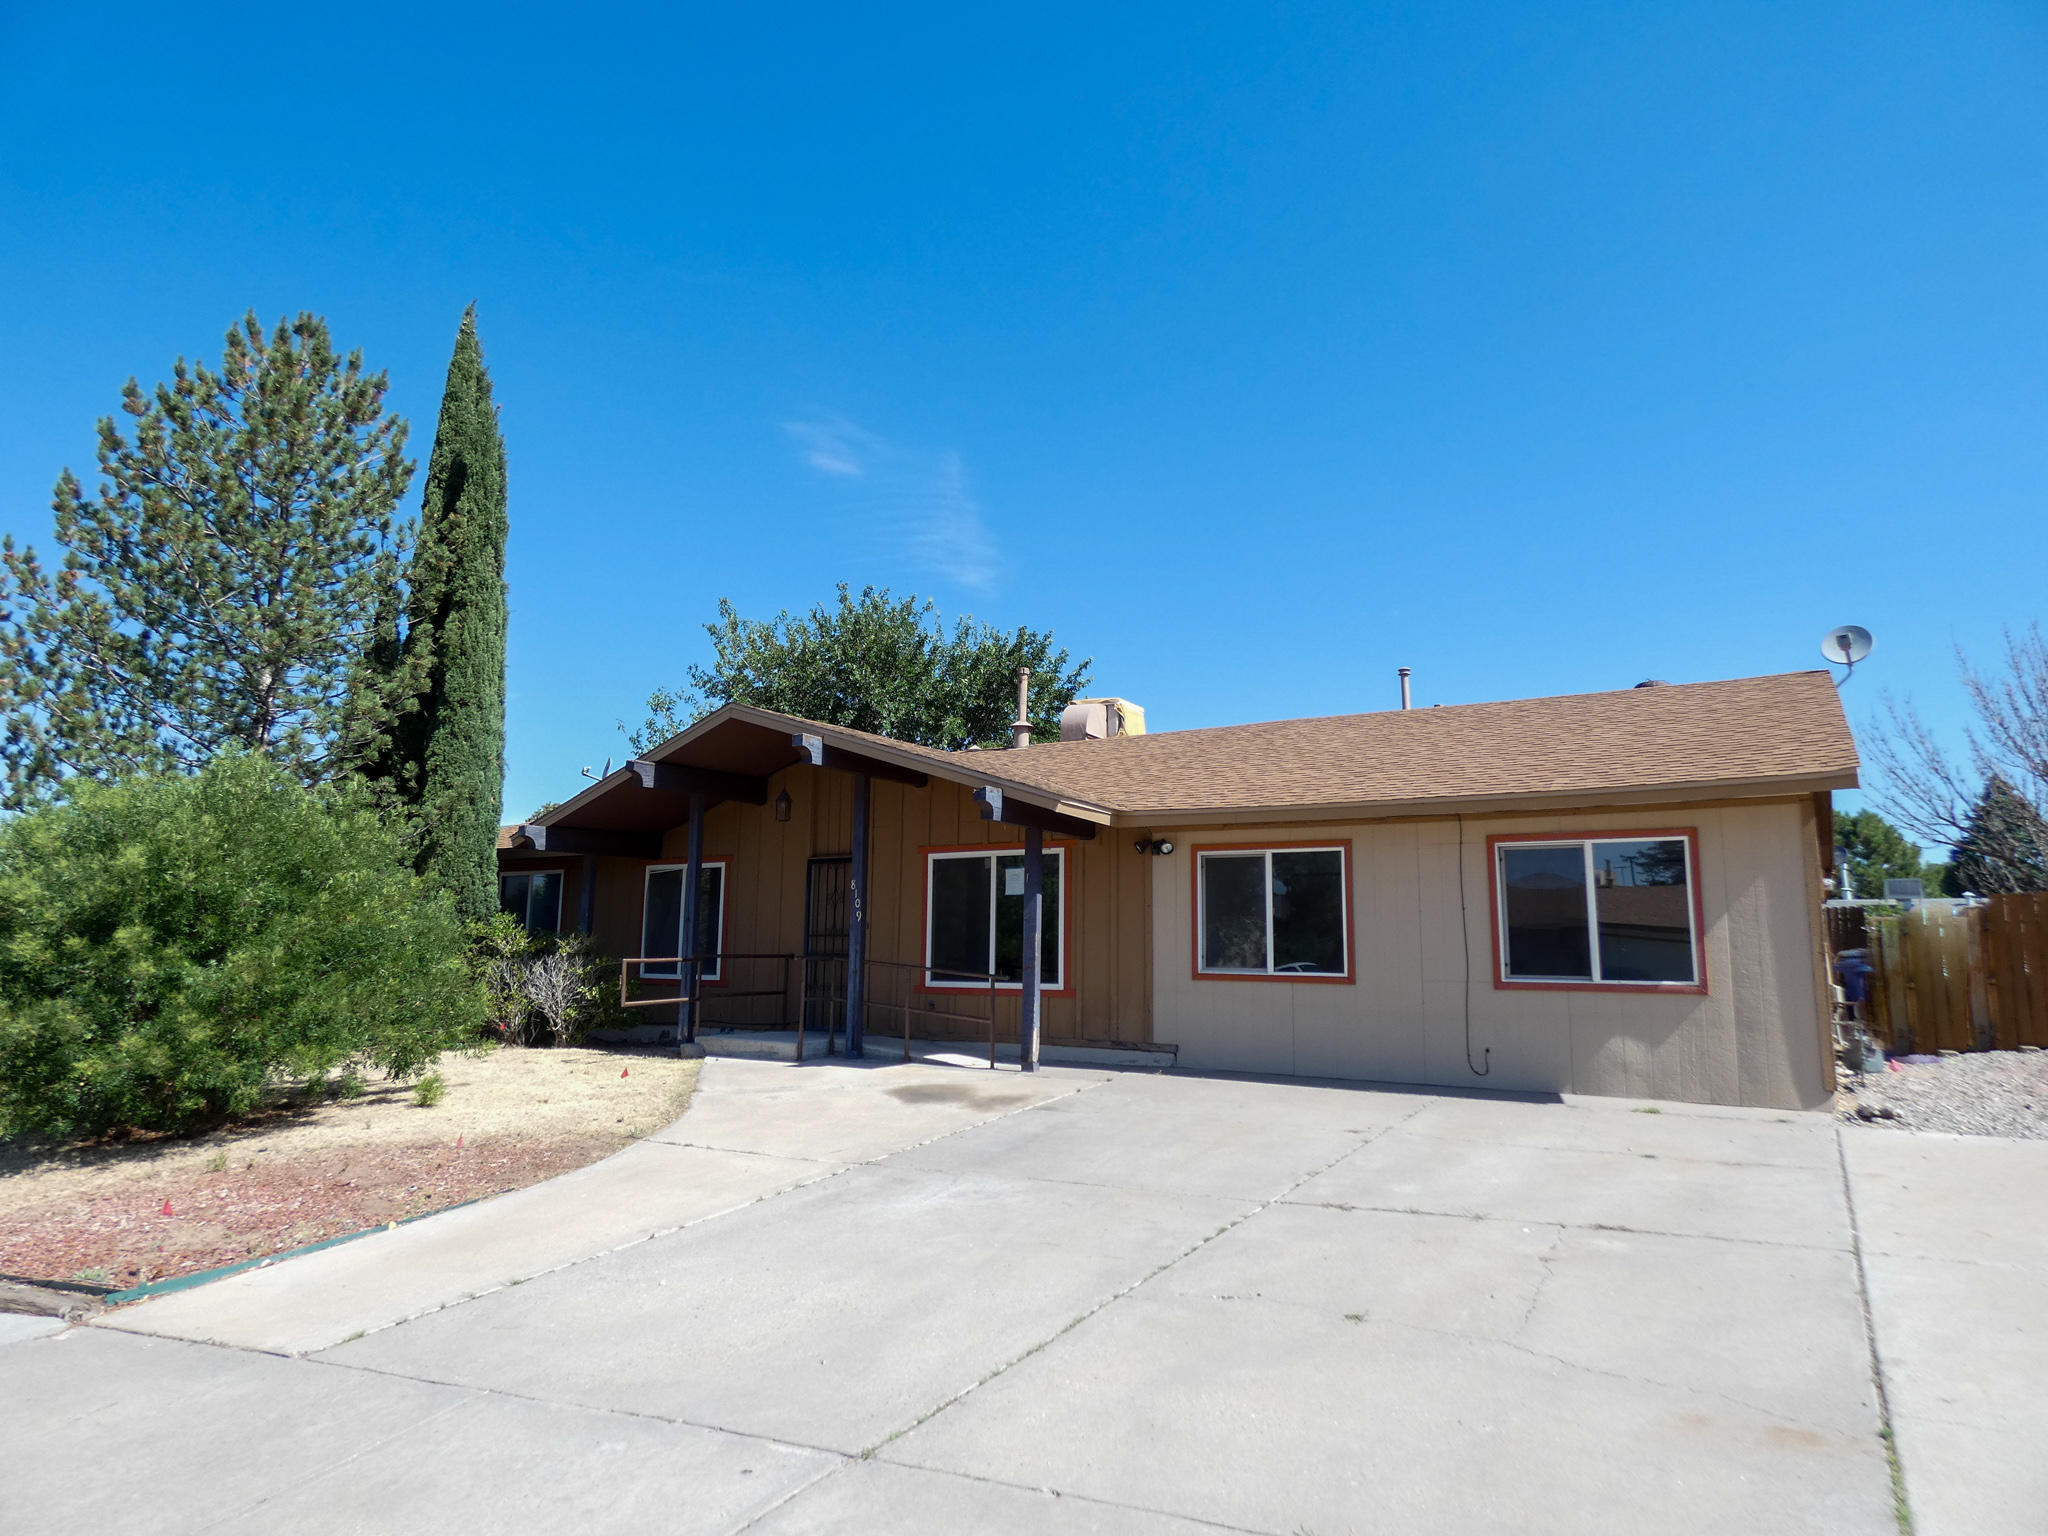 Conveniently located, close to restaurants, parks and shopping. Owner occupant bids accepted thru 7/9/2020  @ 10:59 PM MST. HUD homes are Sold As Is. No pre closing repairs or payments will be made for any reason. Home is insurable for FHA financing. For Utility Turn Ons: Approval must be granted in advance from HUDs Field Svc Mgr. In cases where plumbing deficiencies exist approval for water turn on may be denied. Review PCR for utility turn on information. PCR is not to be relied upon in lieu of a home inspection. ''Insurability subject to buyer's new appraisal.'' Equal Housing Opportunity $100 down payment on this HUD Home if financed with FHA-insured financing for Owner Occupant buyers.